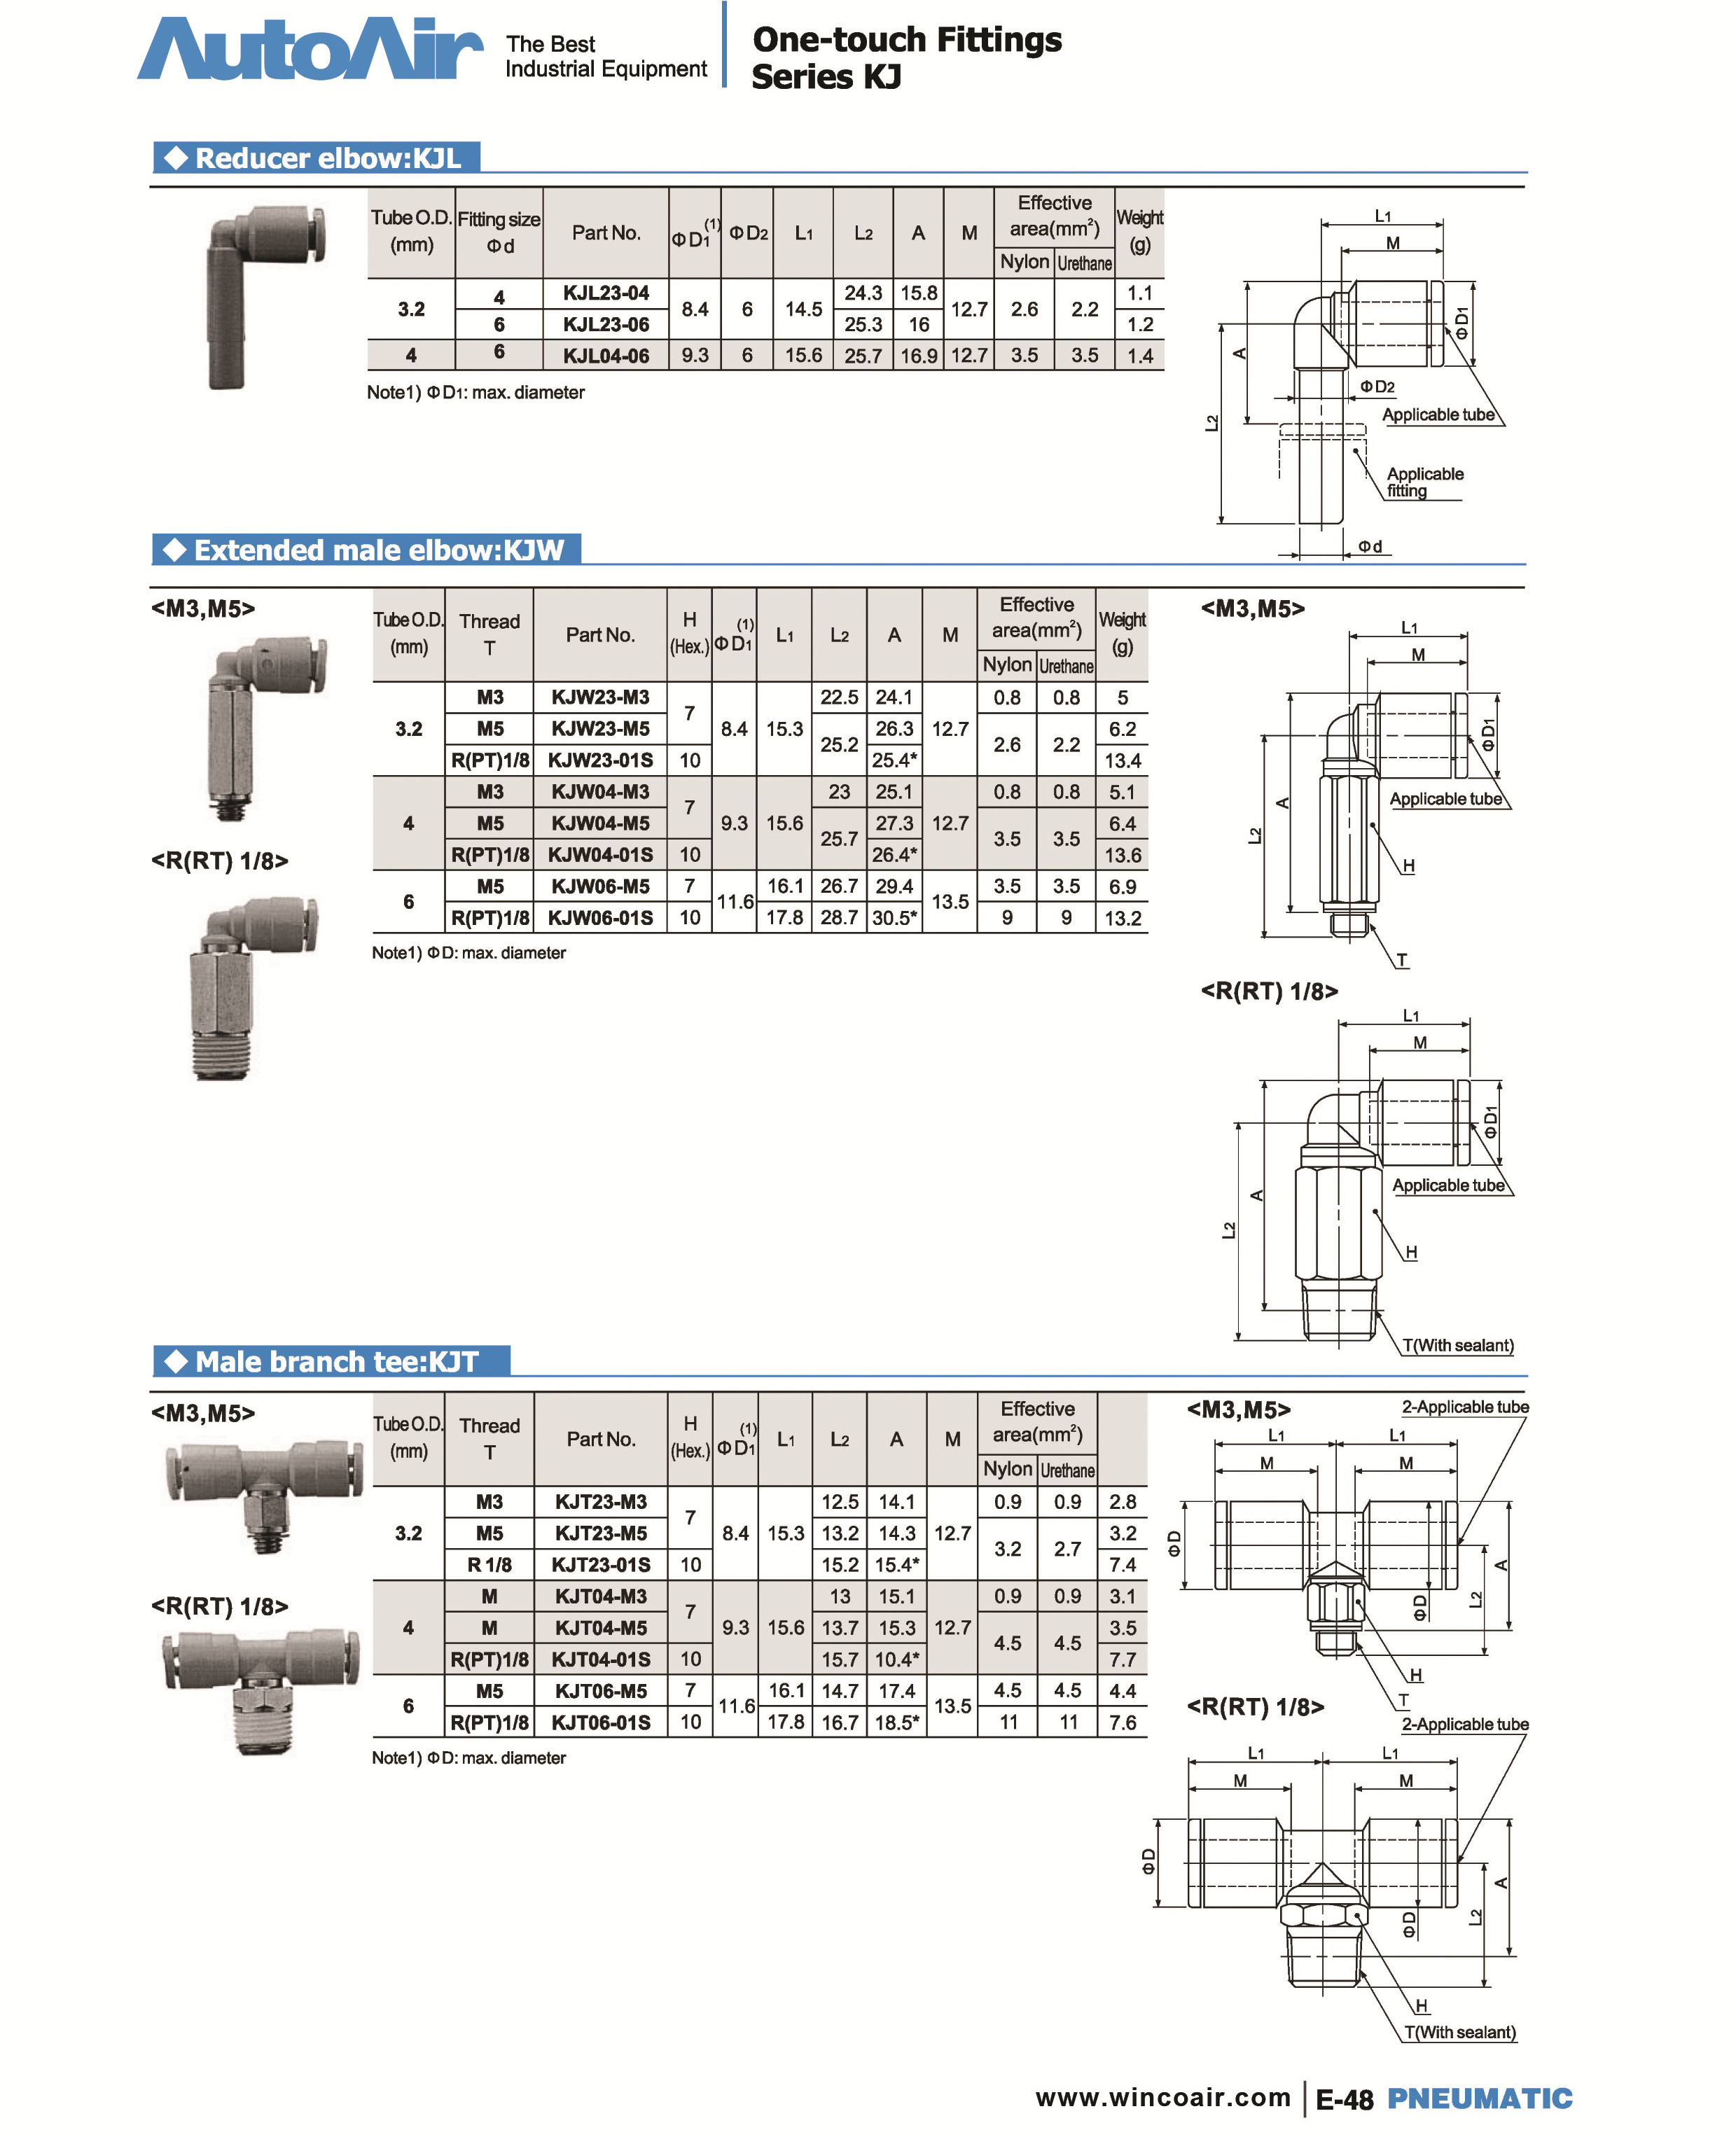 fittings and tubing(48)